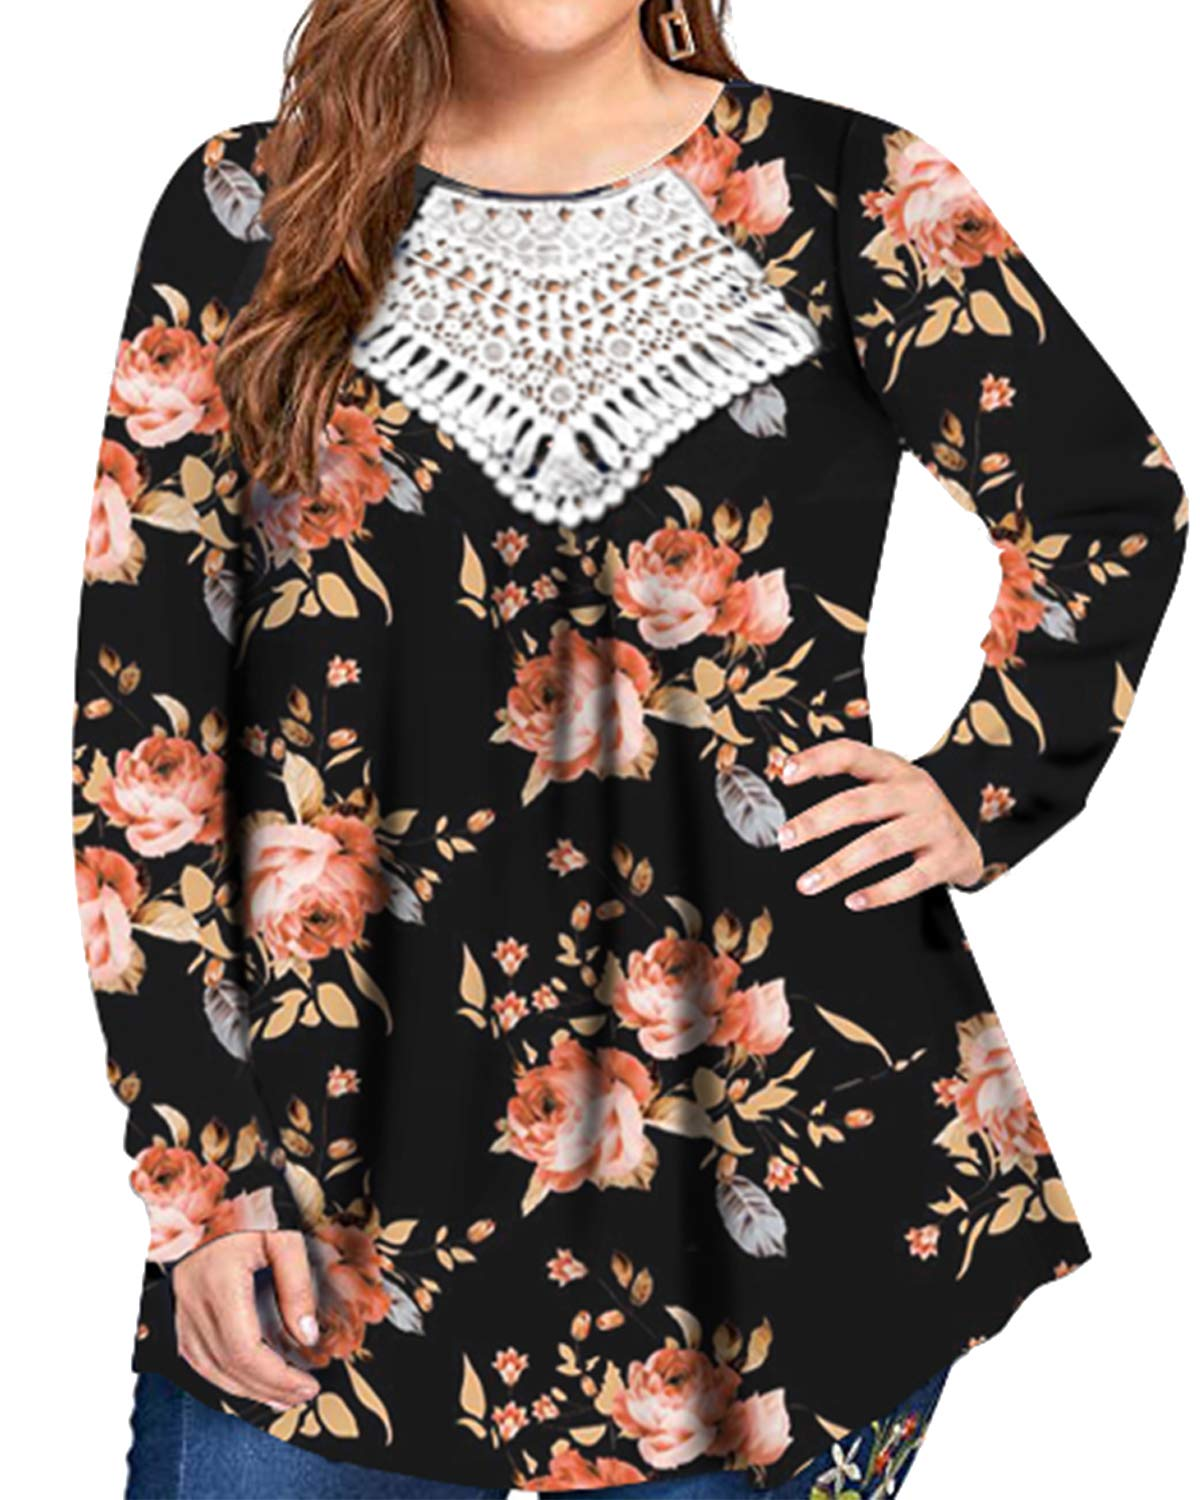 Promaska Lace Blouses for Women Fashion 2019, Ladies Long Sleeve Hollow Out V Neck Shirts Flowy Hem Pleated Front Cotton Knit Tops Floral Black 4XL